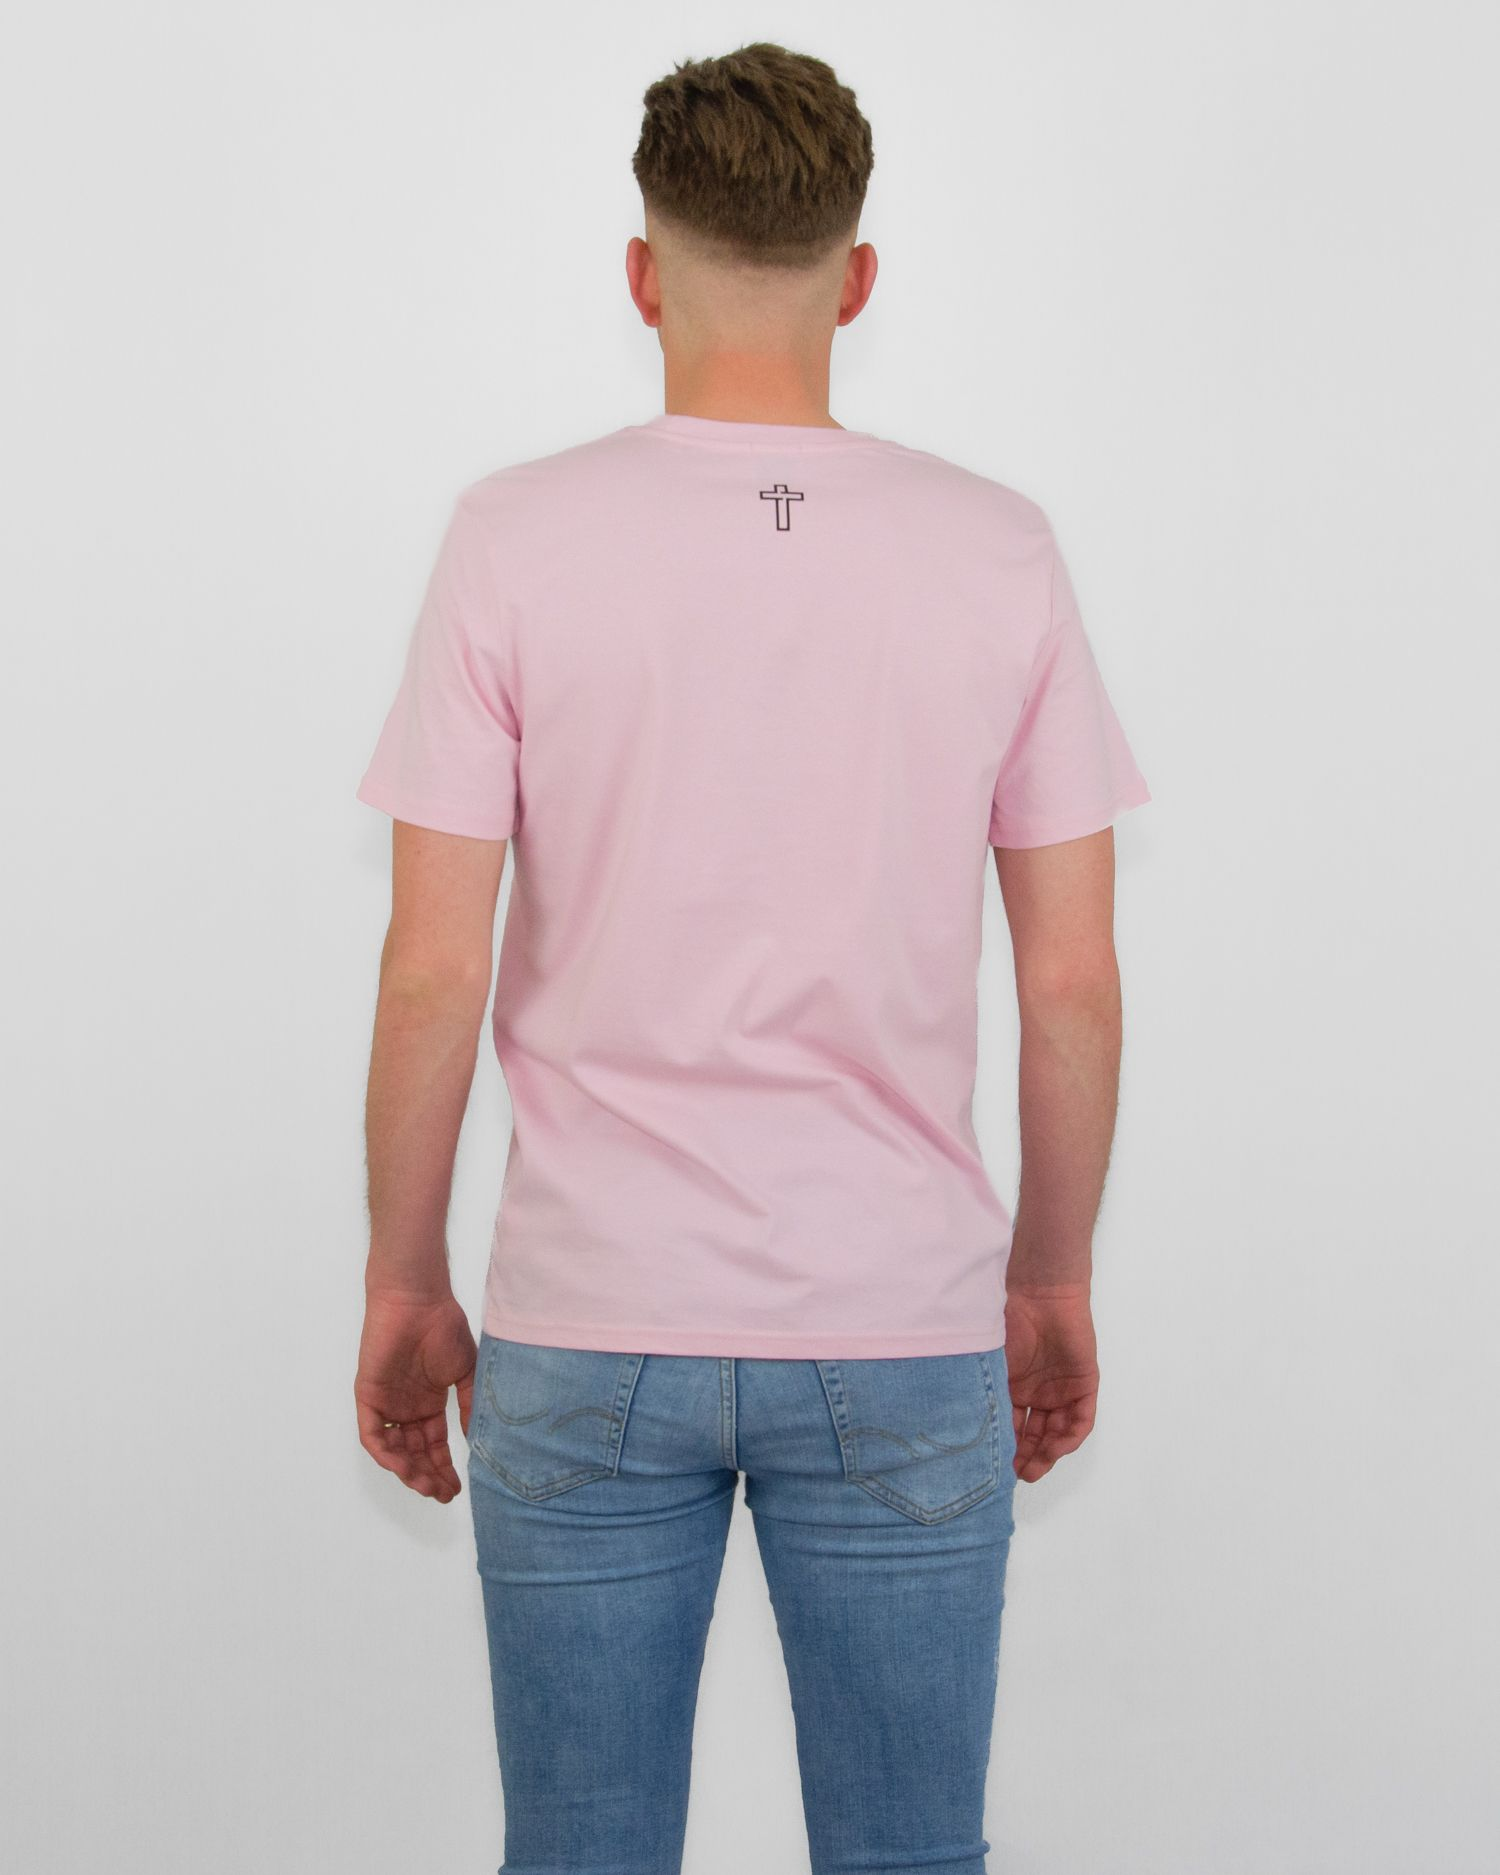 New Testament Original T Roze Pink Heren Achter